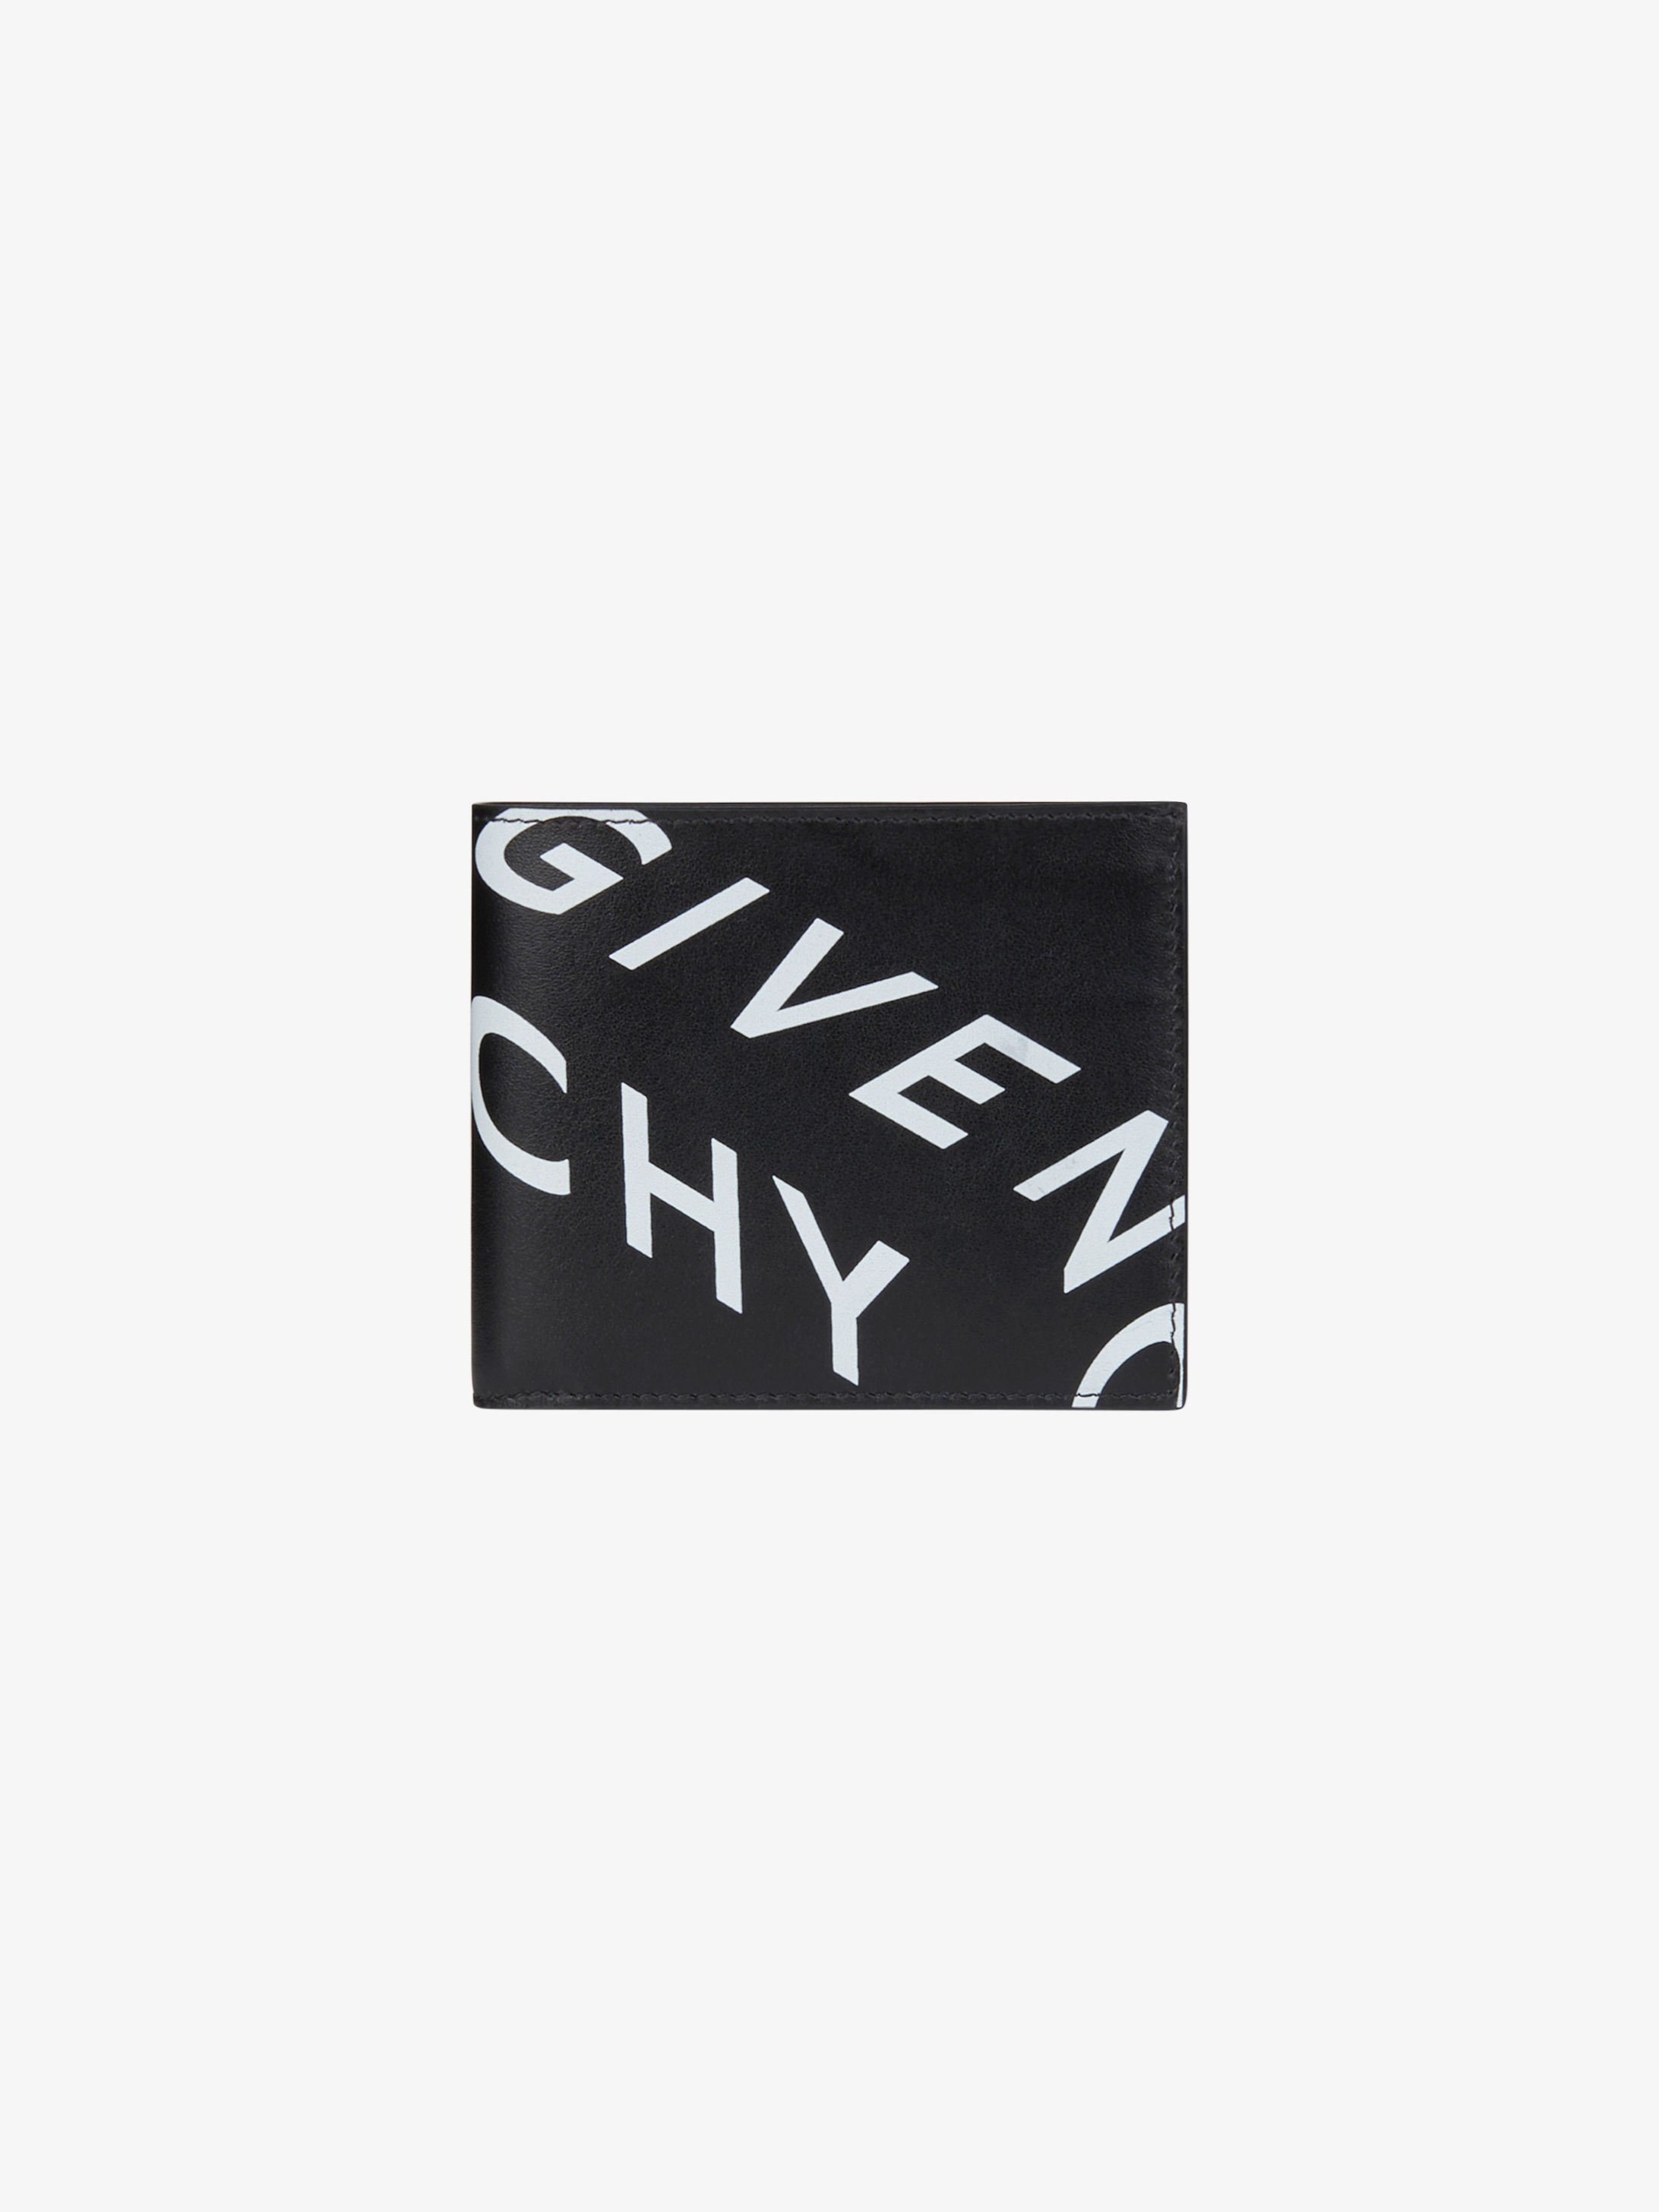 GIVENCHY Refracted wallet in leather